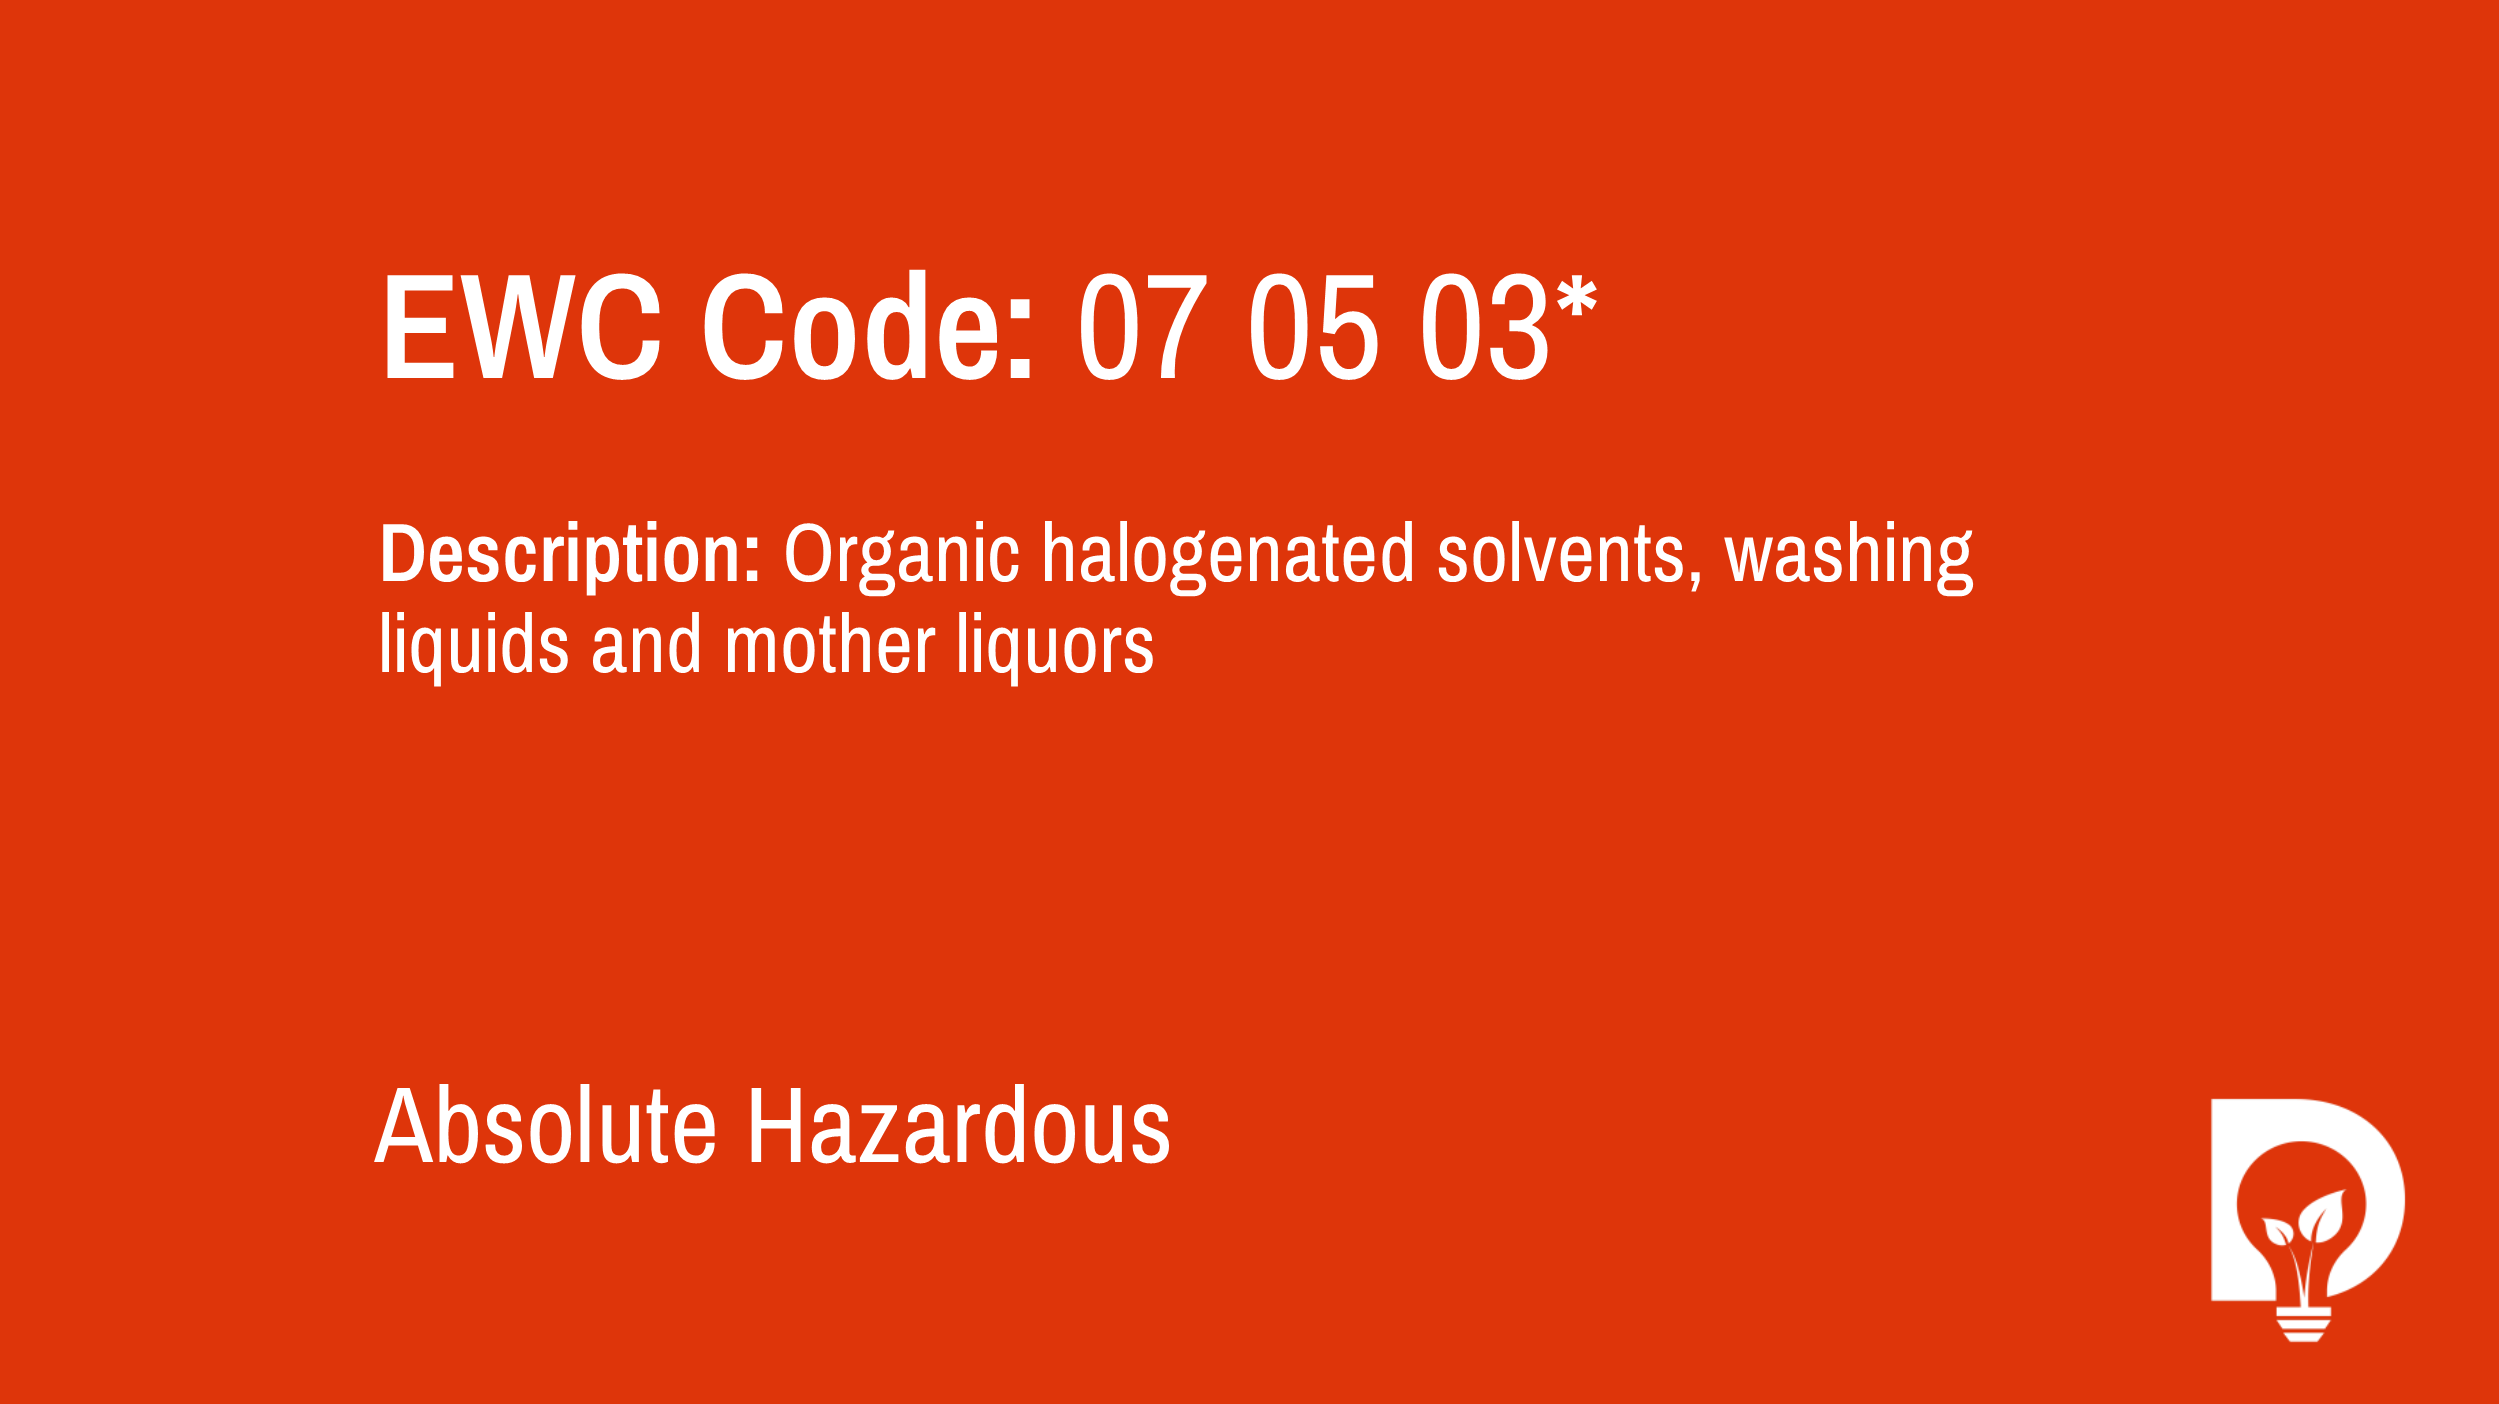 EWC Code: 07 05 03* - organic halogenated solvents, washing liquids and mother liquors. Type: Absolute Hazardous. Image by Dsposal